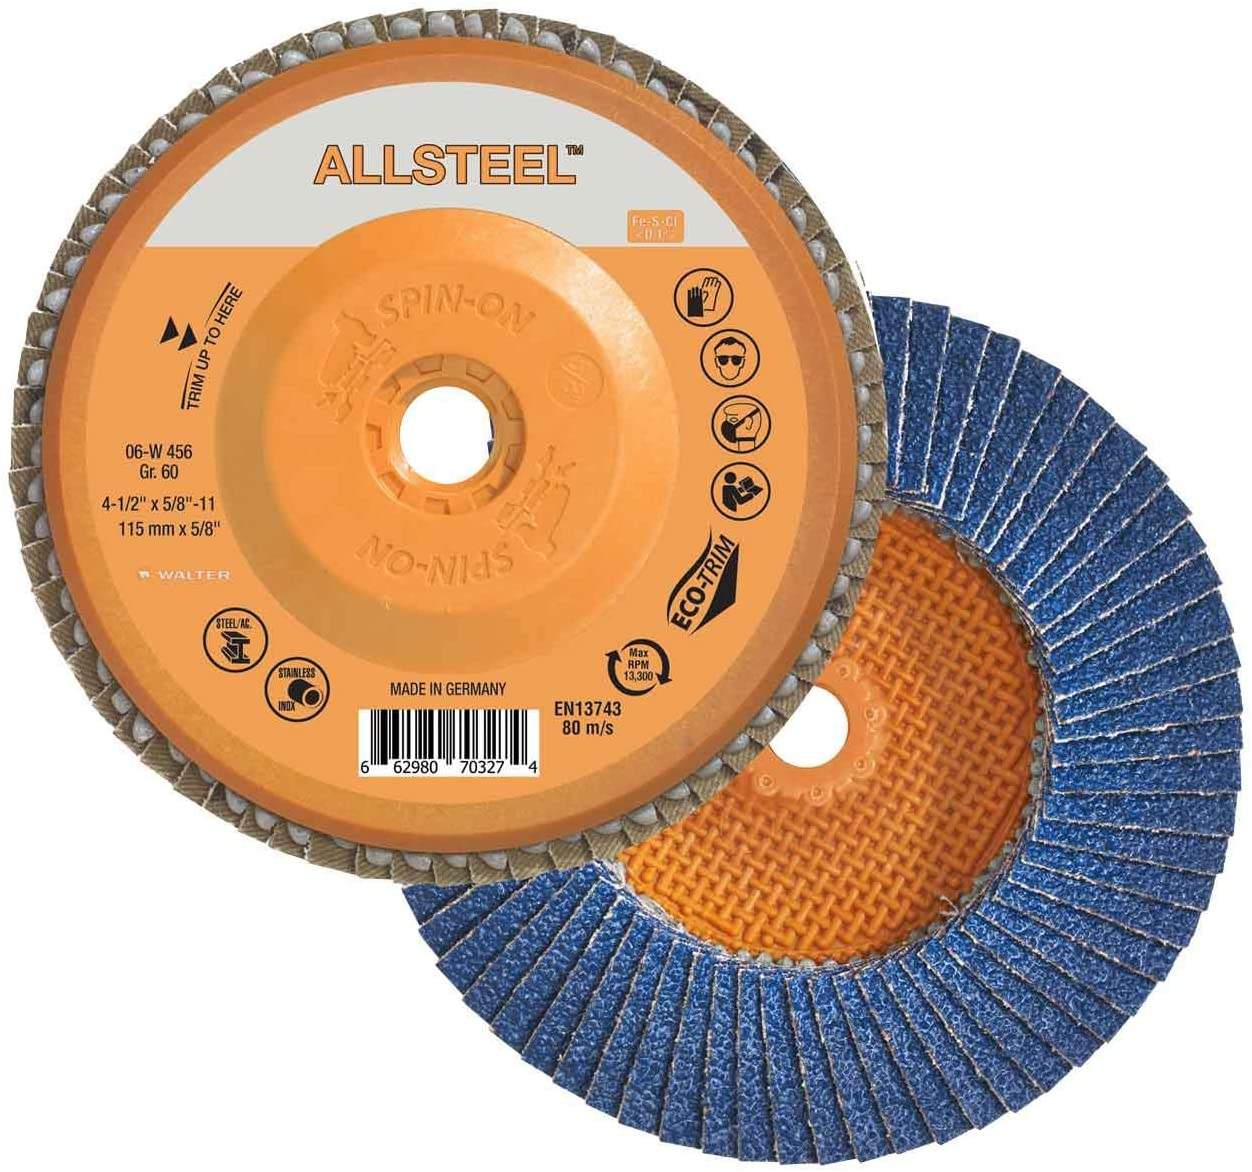 Walter 06W456 4-1/2x5/8-11 ALLSTEEL Flap Disc Spin-On with Eco-Trim Backing 60 Grit Type 27S, 10 pack